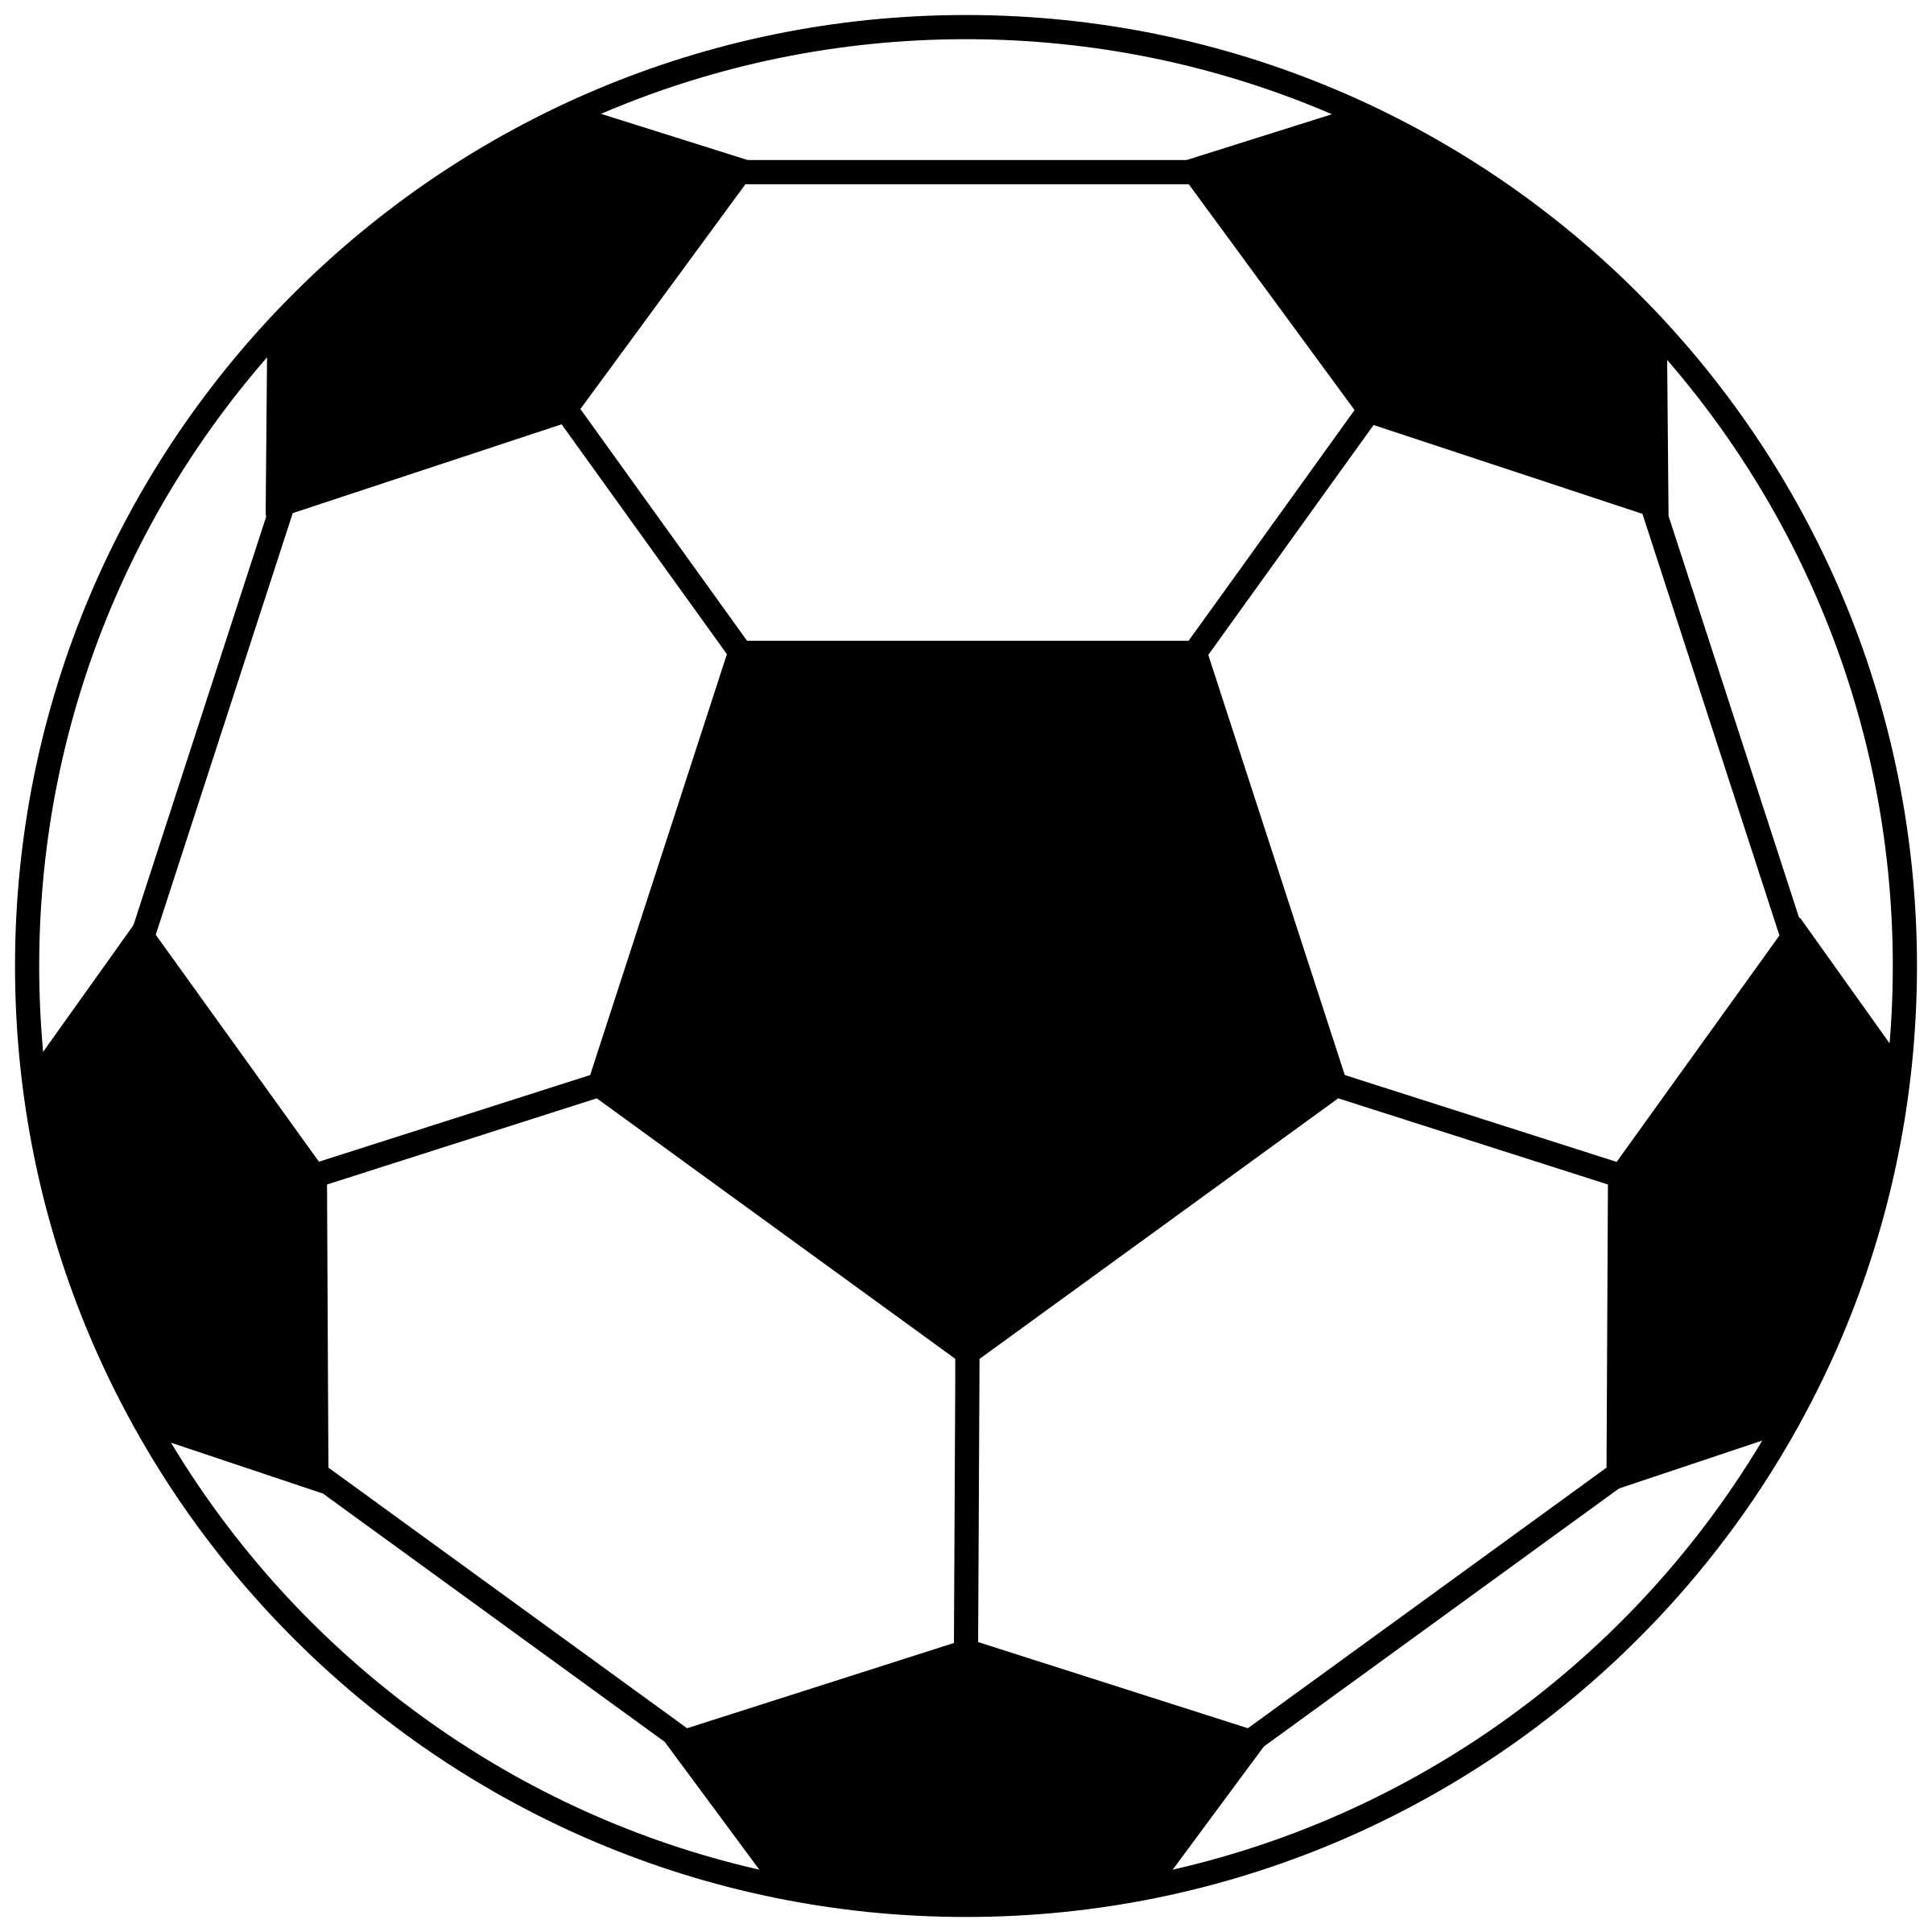 Clipart - Classic Football graphic transparent download